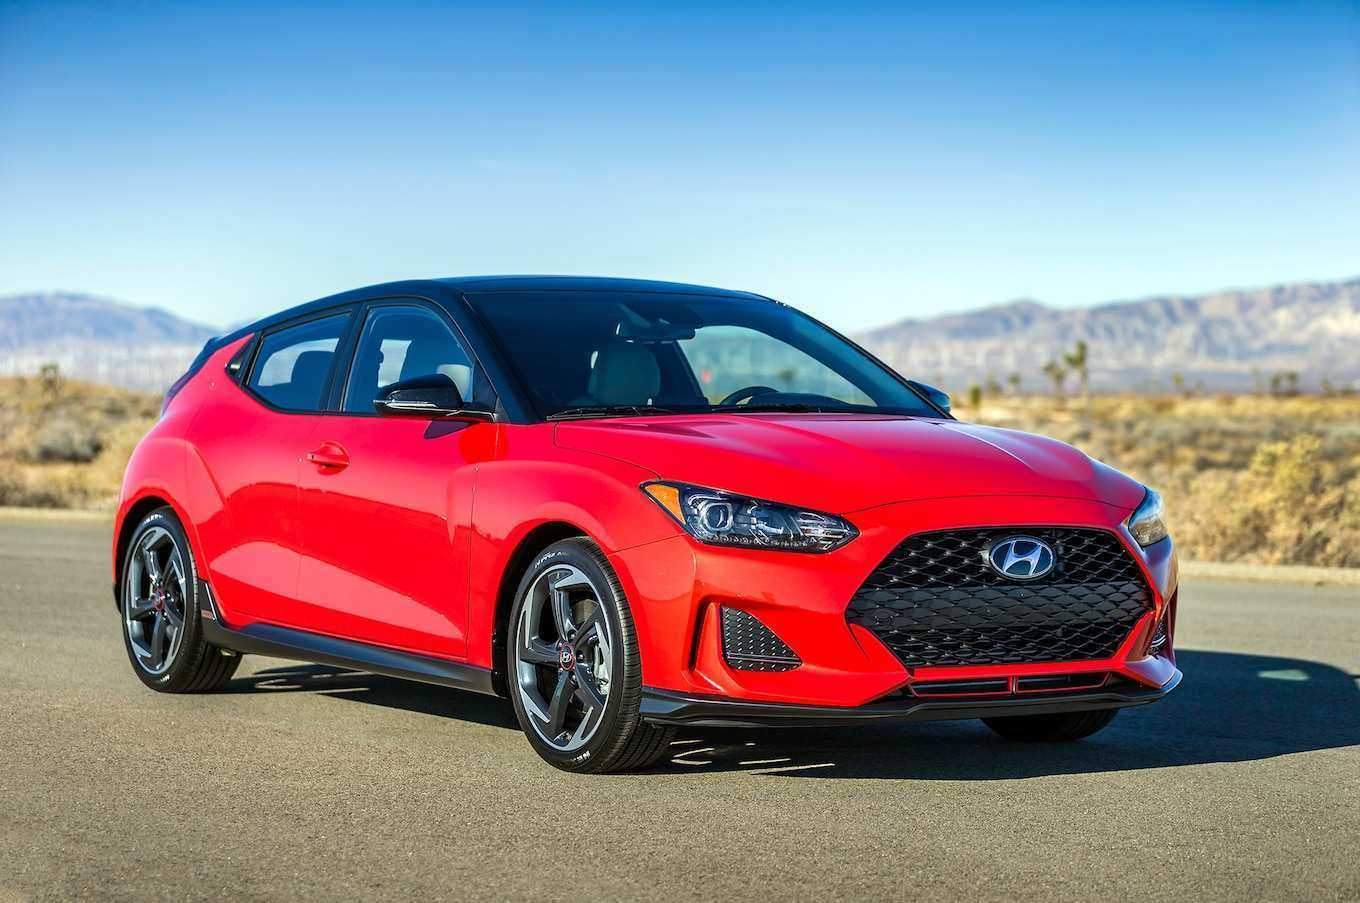 92 Gallery of 2019 Hyundai Veloster Turbo Specs and Review with 2019 Hyundai Veloster Turbo